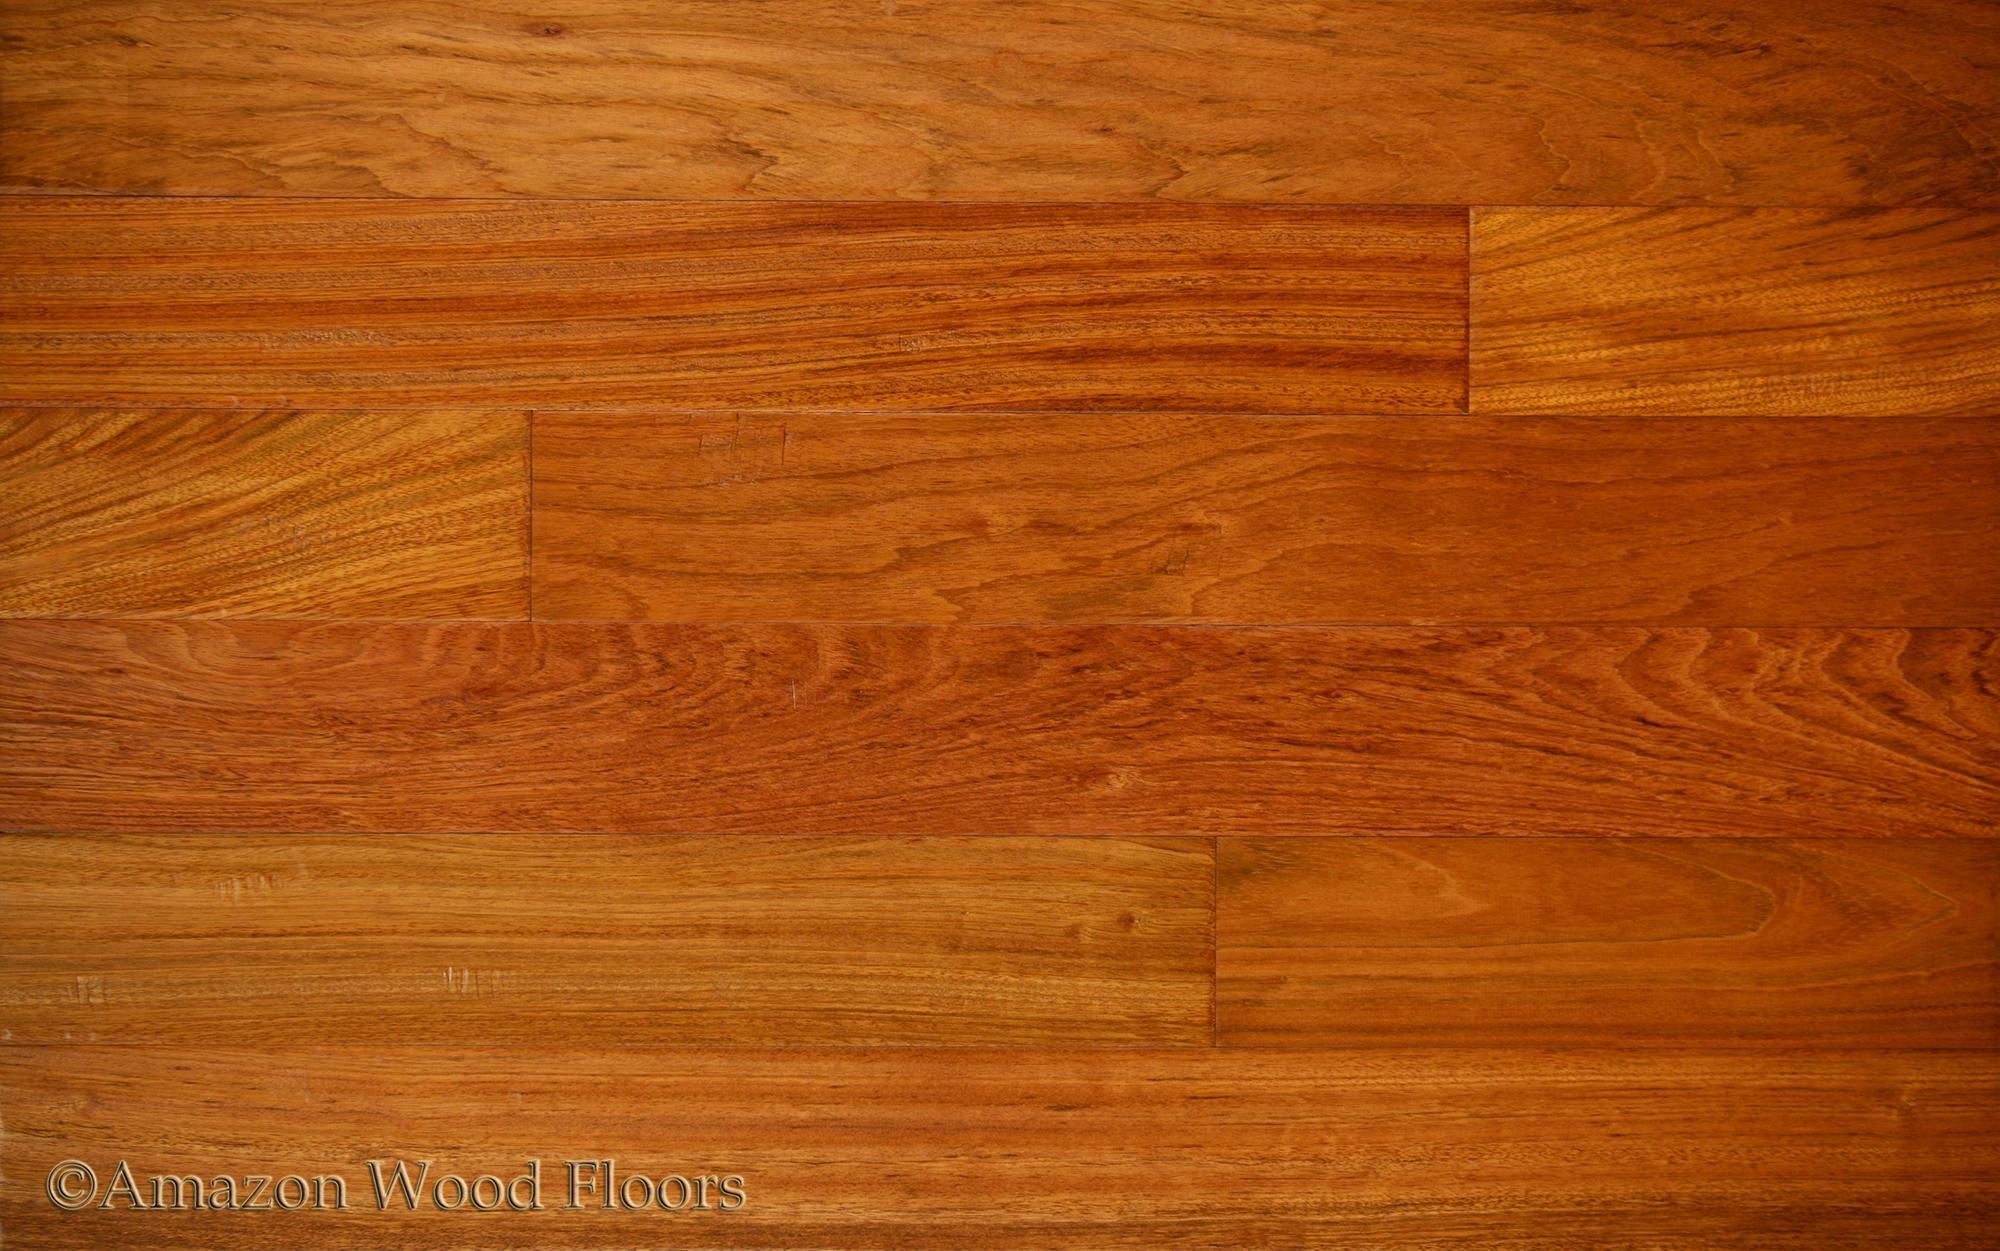 Brazilian cherry jatoba natural amazon wood floors for Hardwood floors on sale